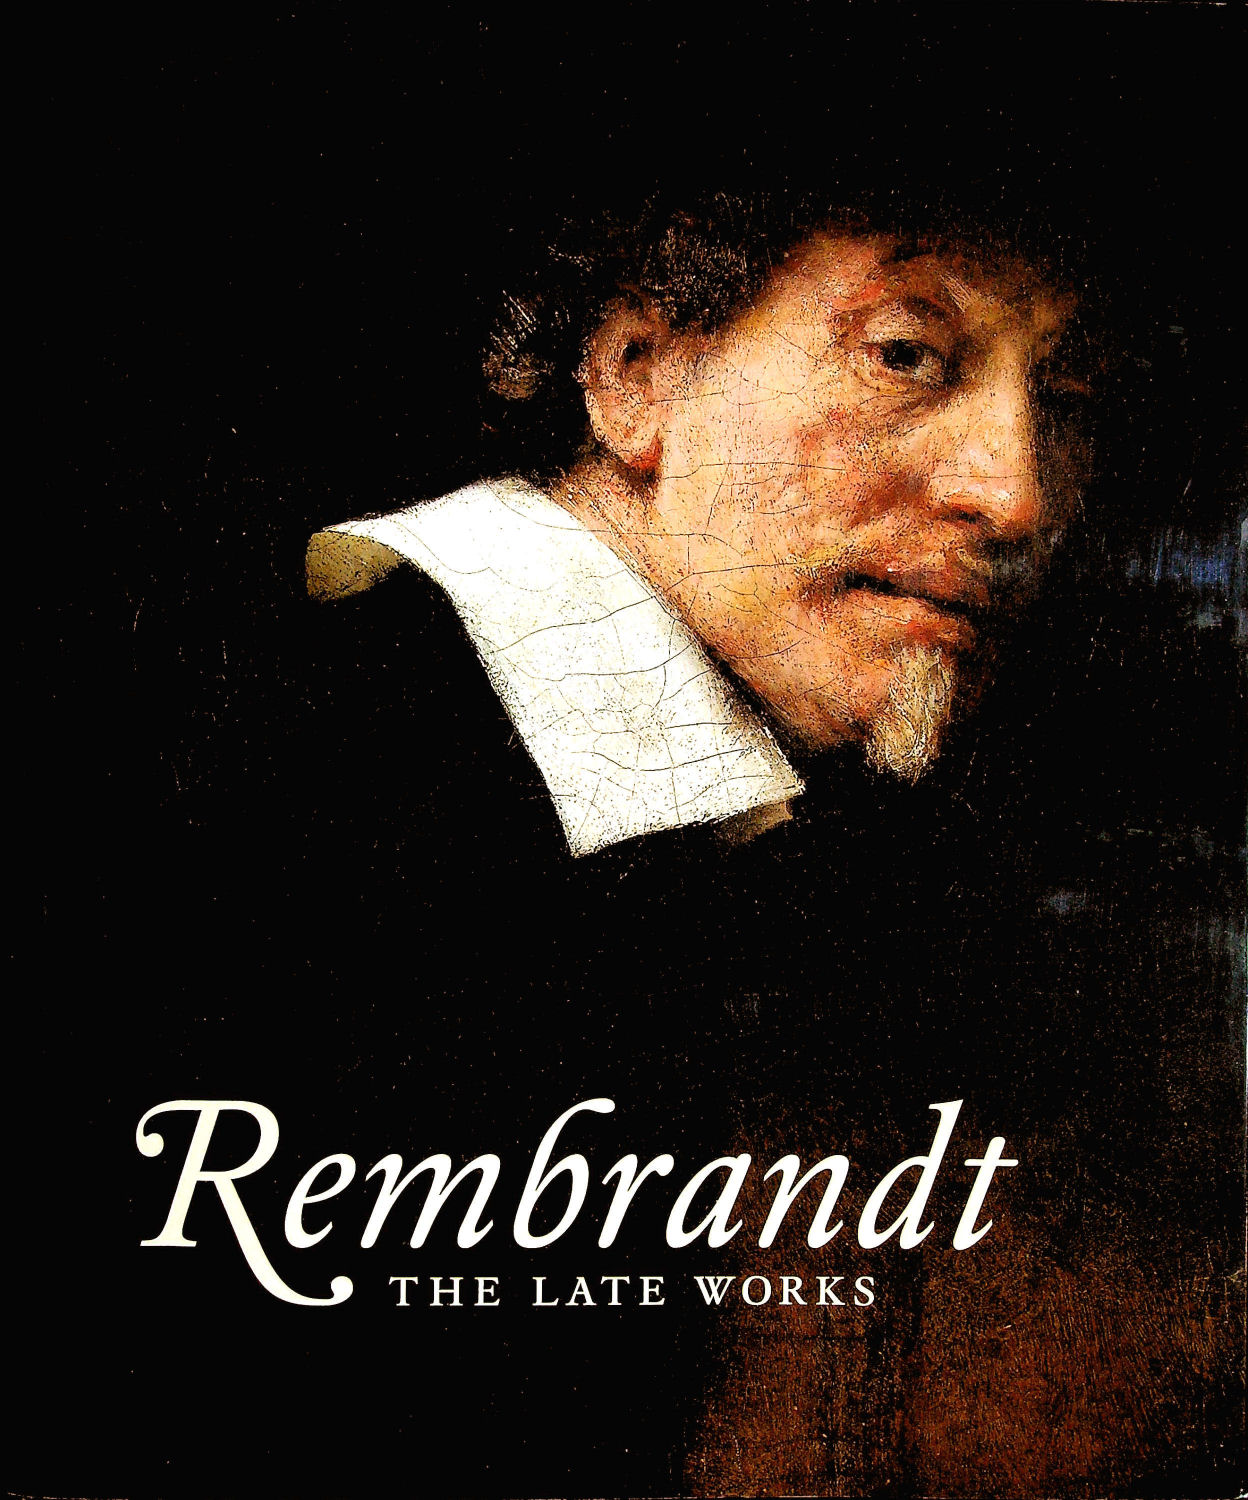 Image for Rembrandt: the late works